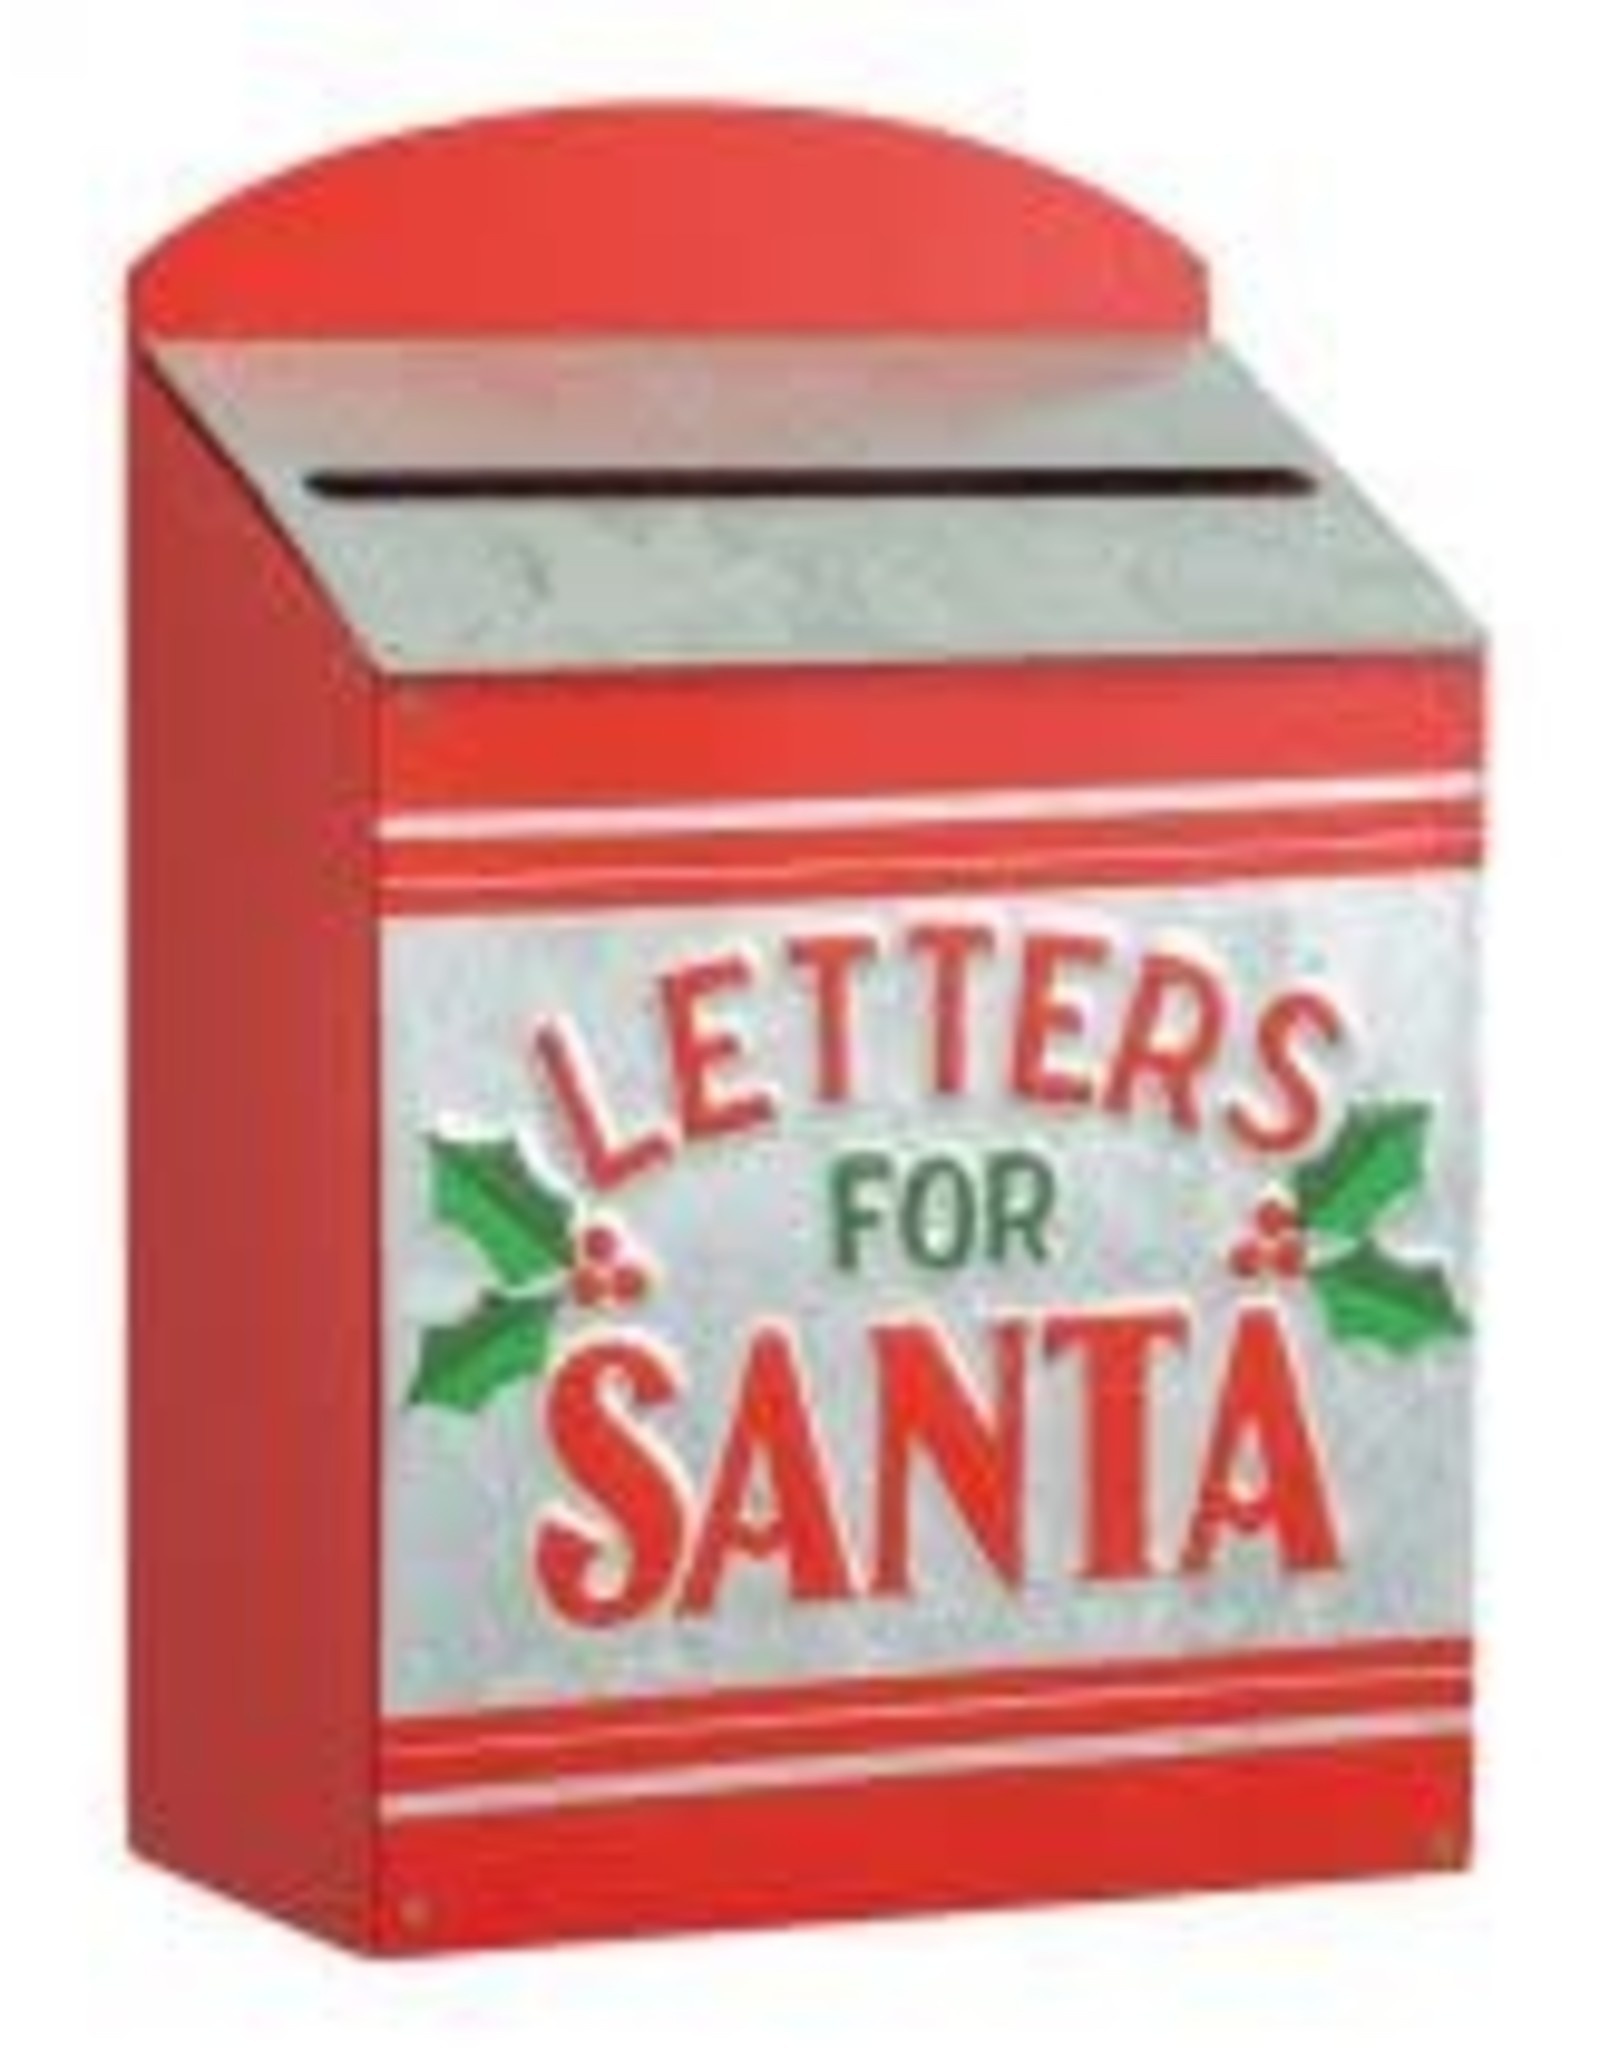 Wink Letters for Santa Collection Box